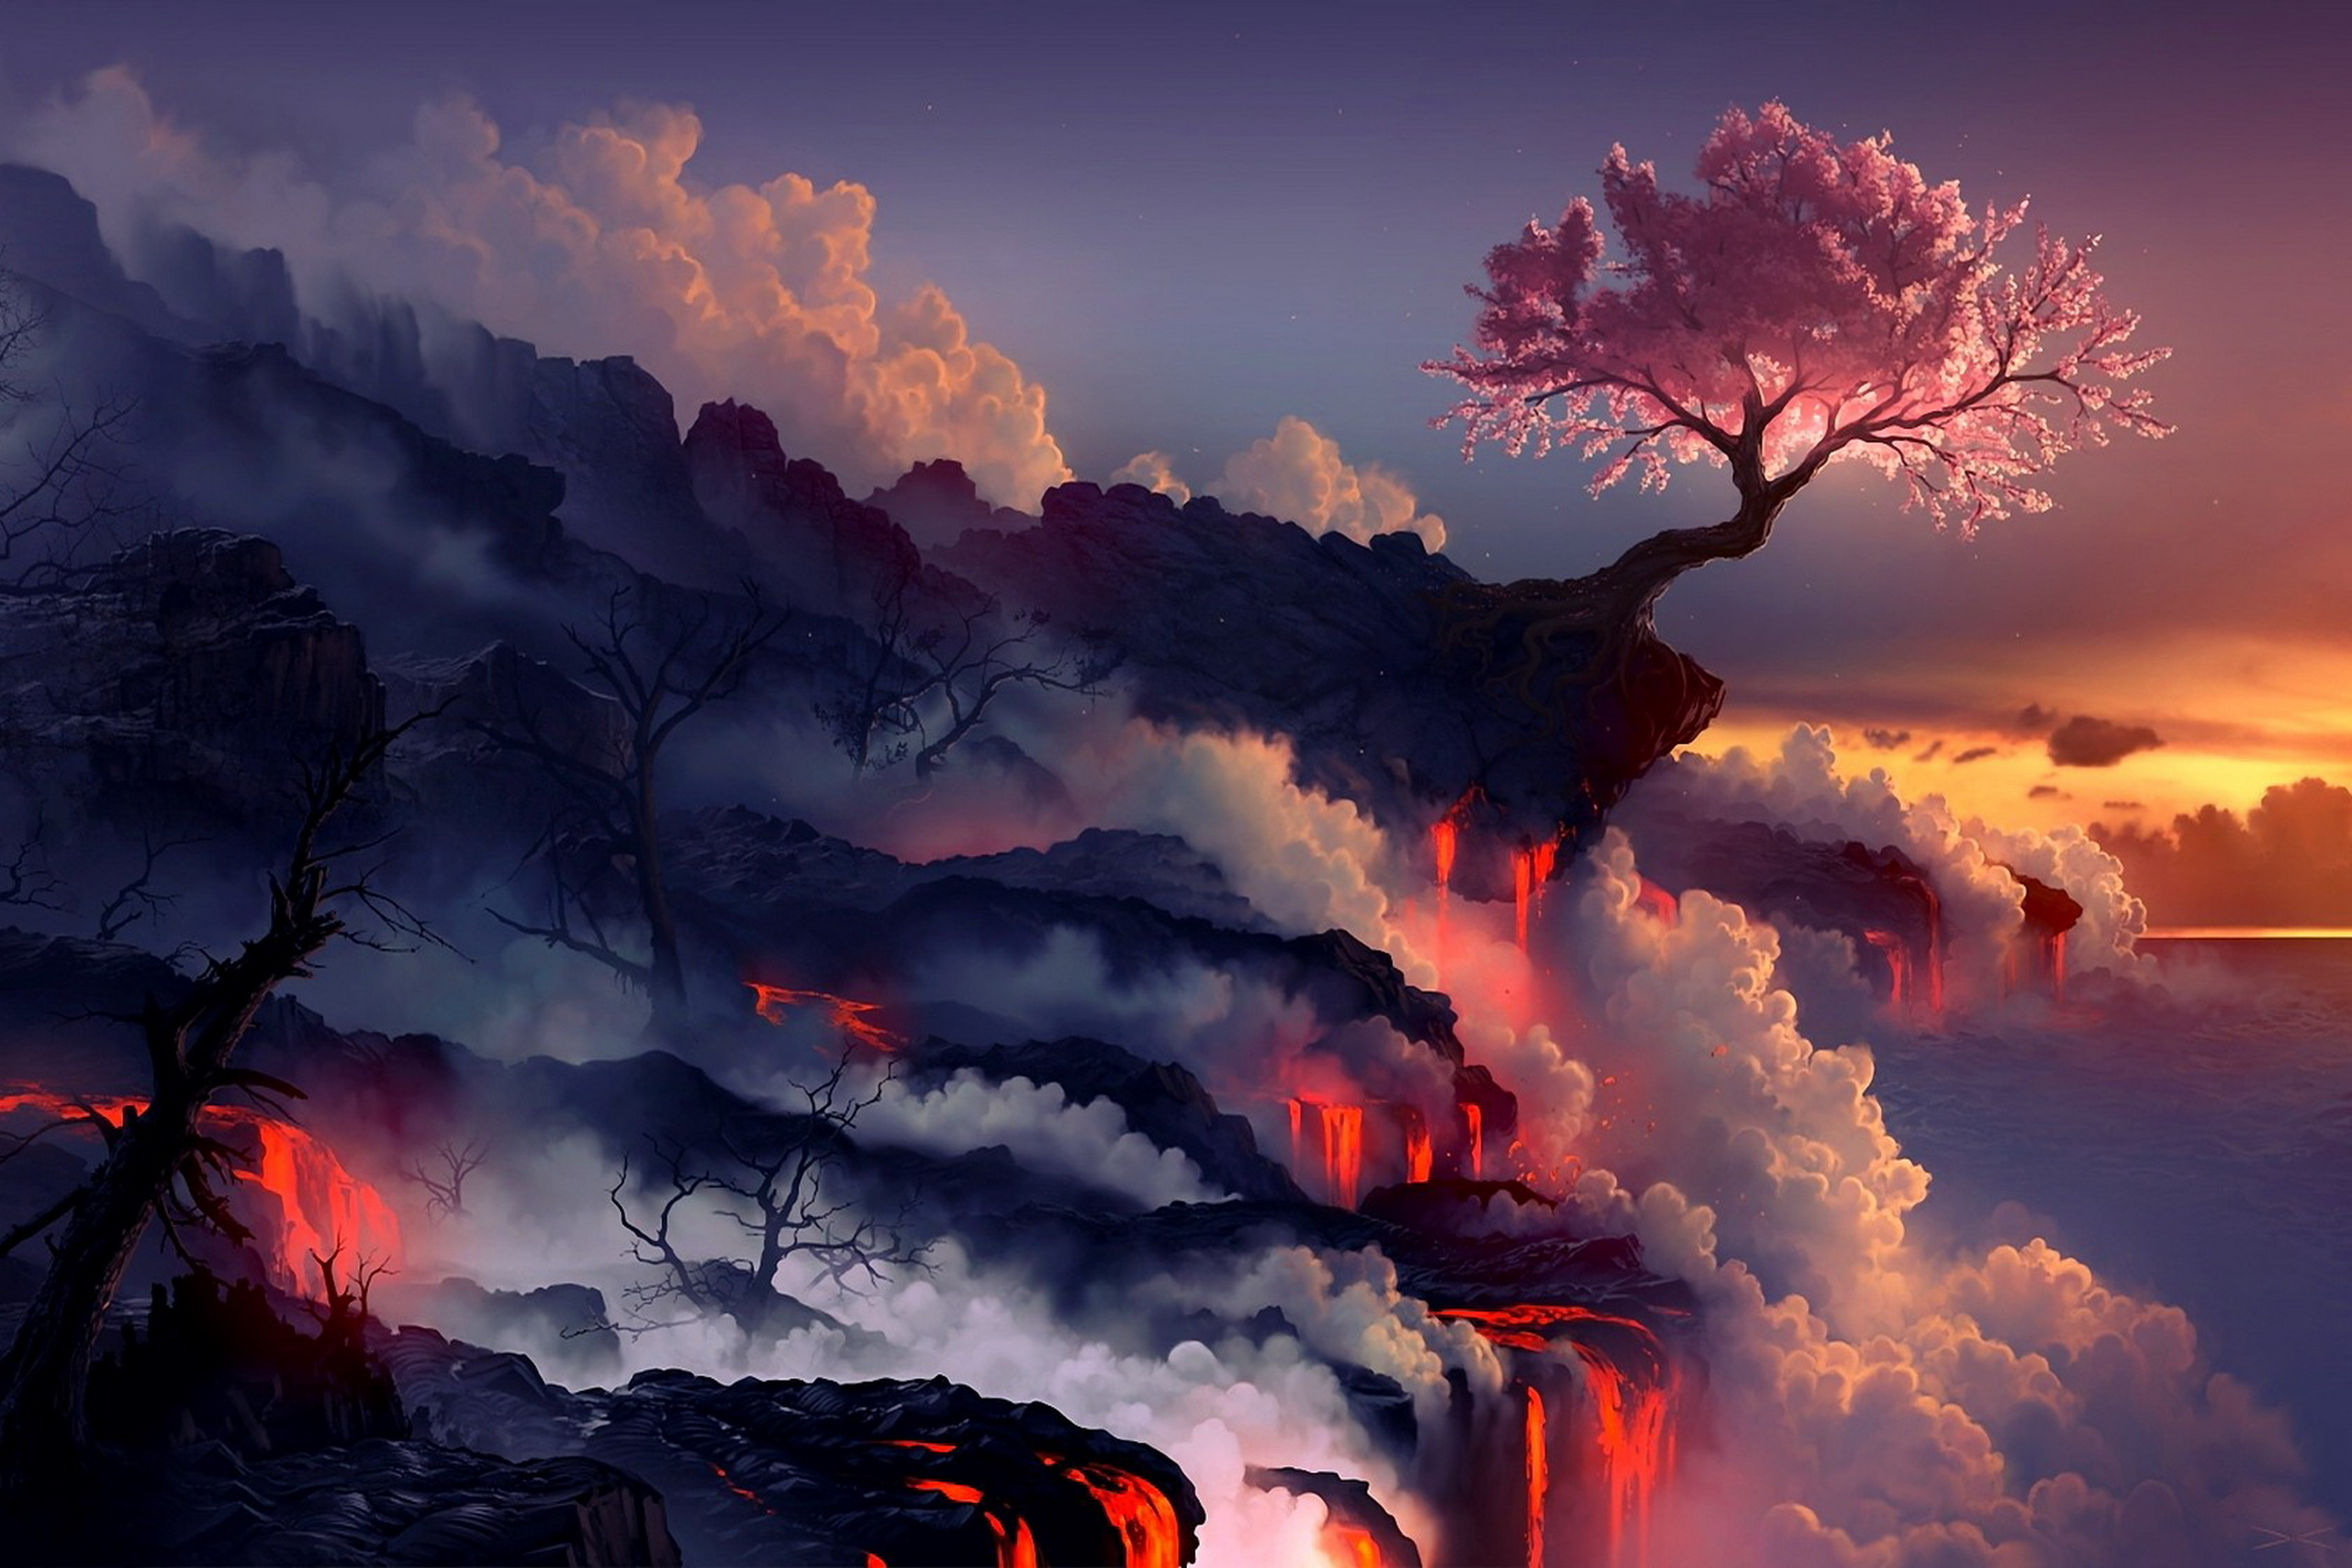 Us 6 92 37 Off Home Decoration Lava Sunset Smoke Nature Landscapes Fantasy Art Cherry Blossoms Silk Fabric Poster Print 274fj In Painting